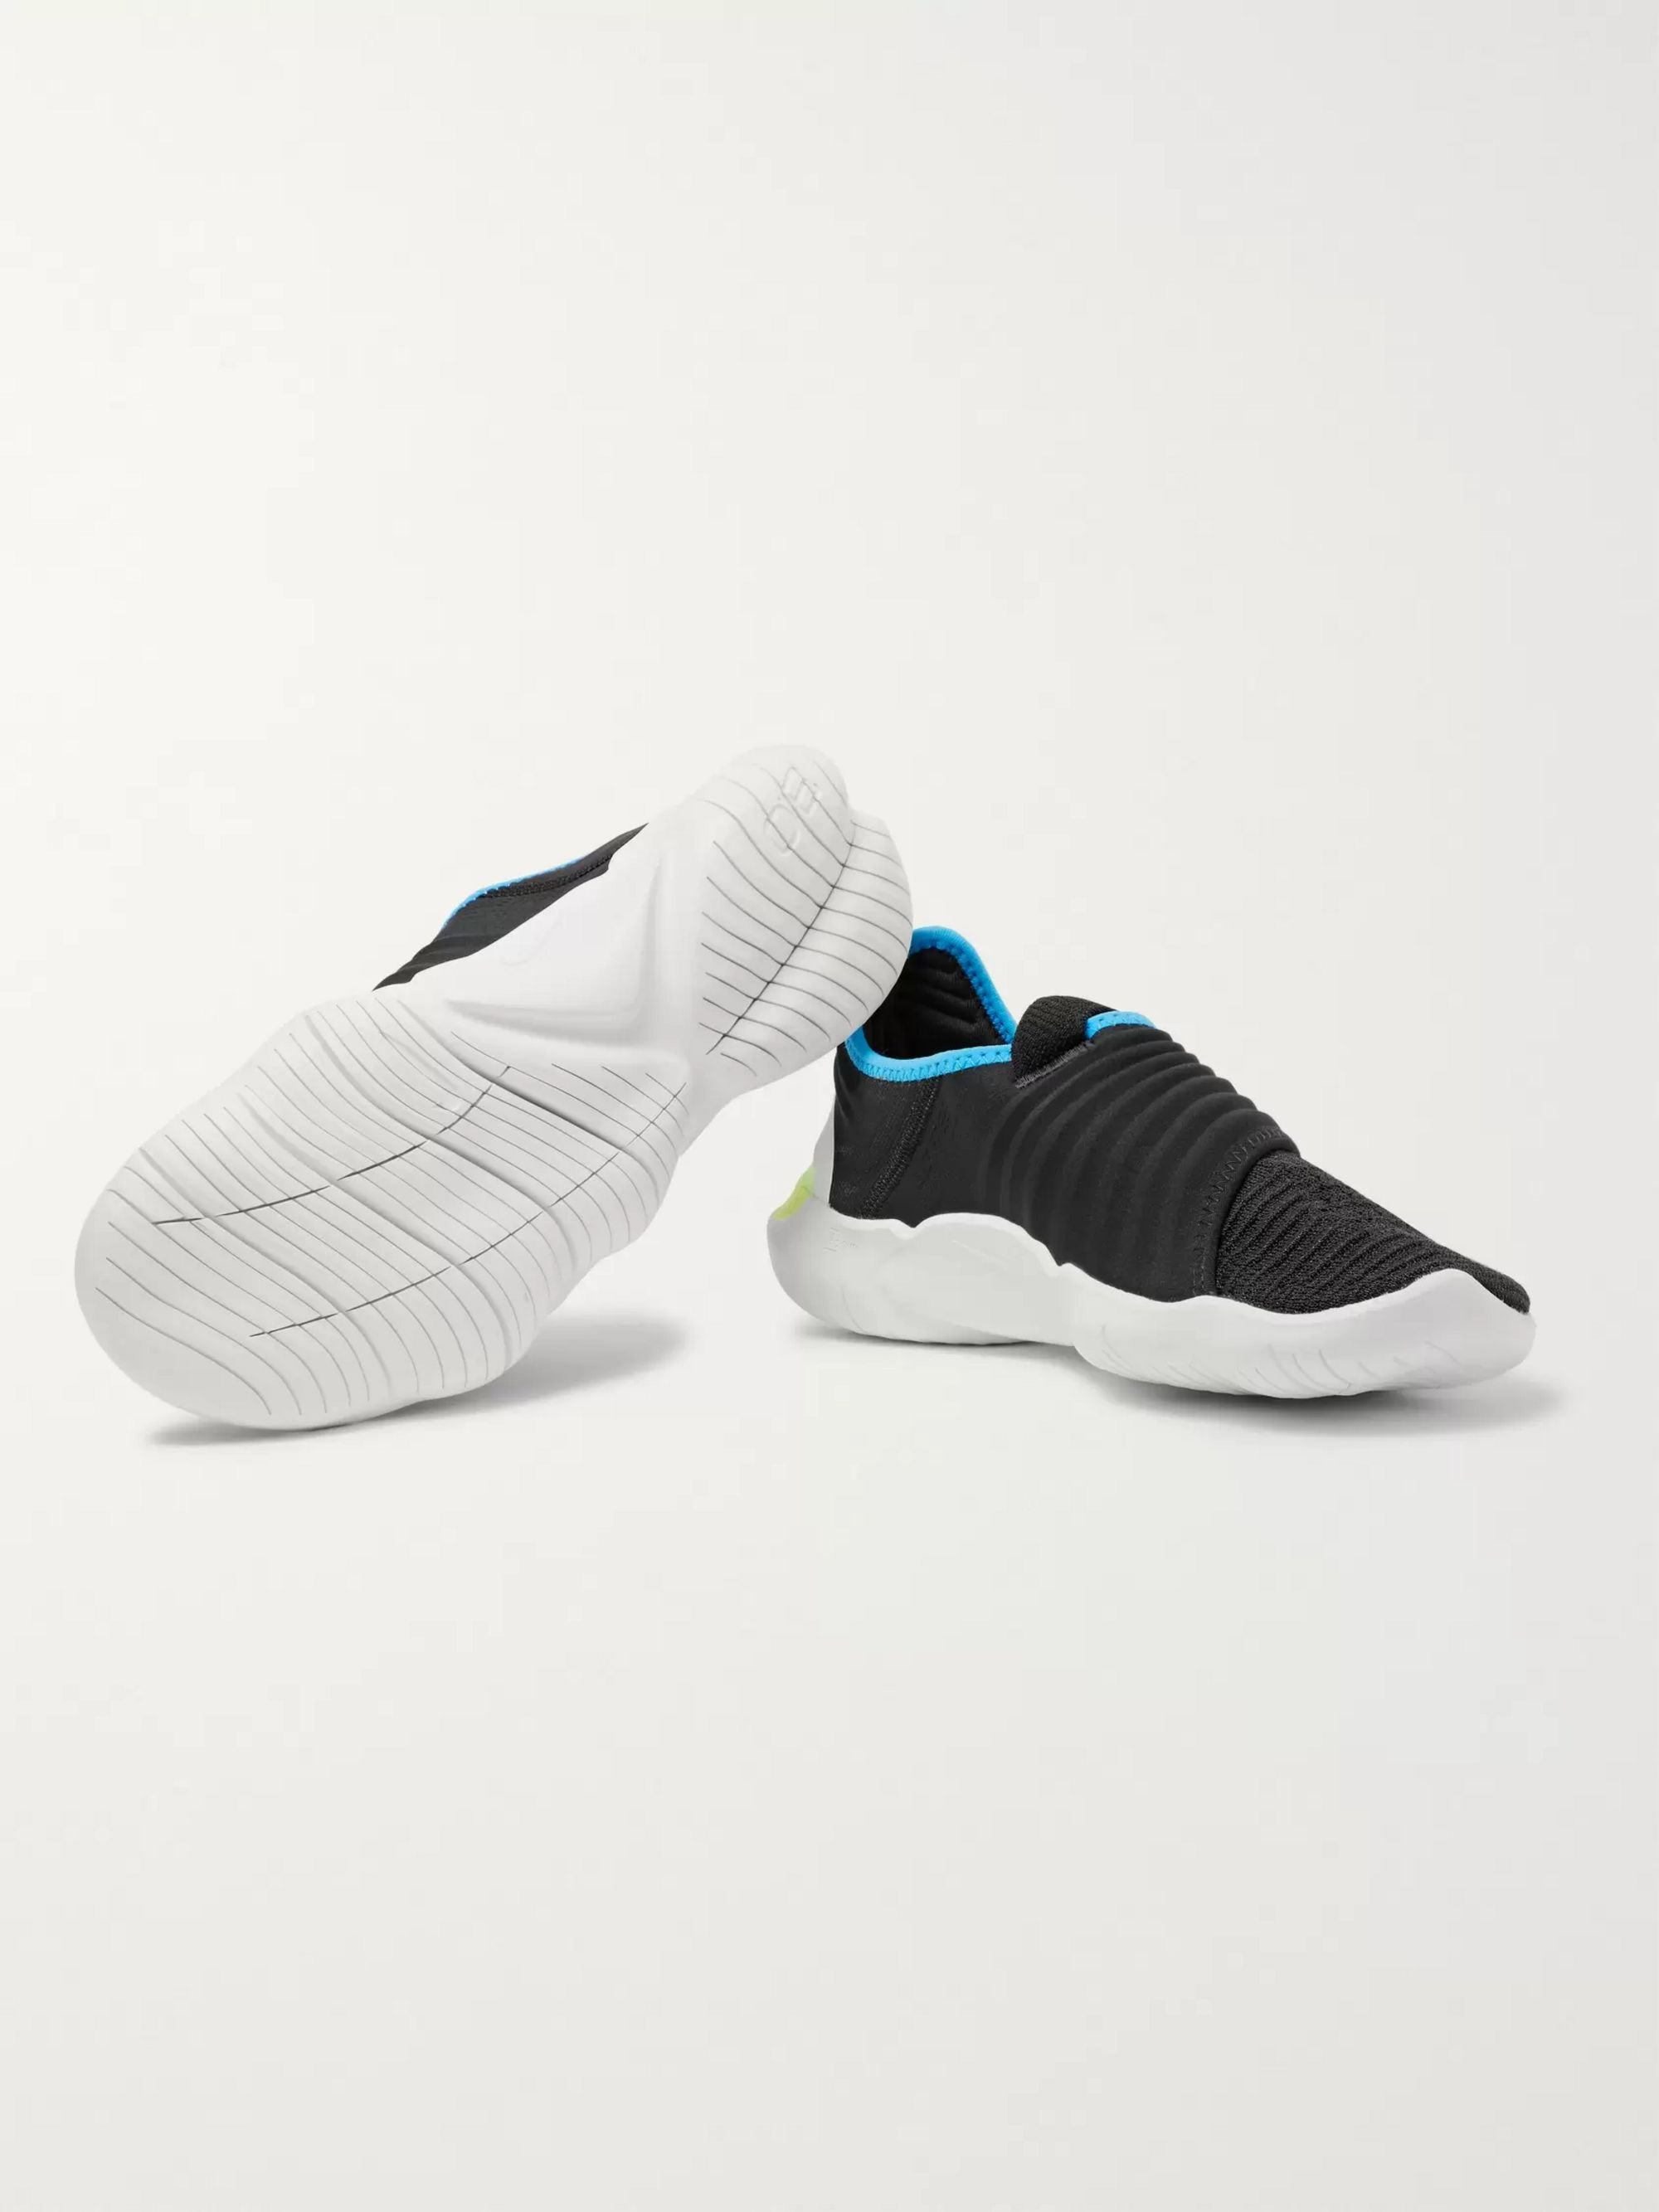 Nike Running Free RN 3.0 Flynit and Neoprene Slip-On Sneakers